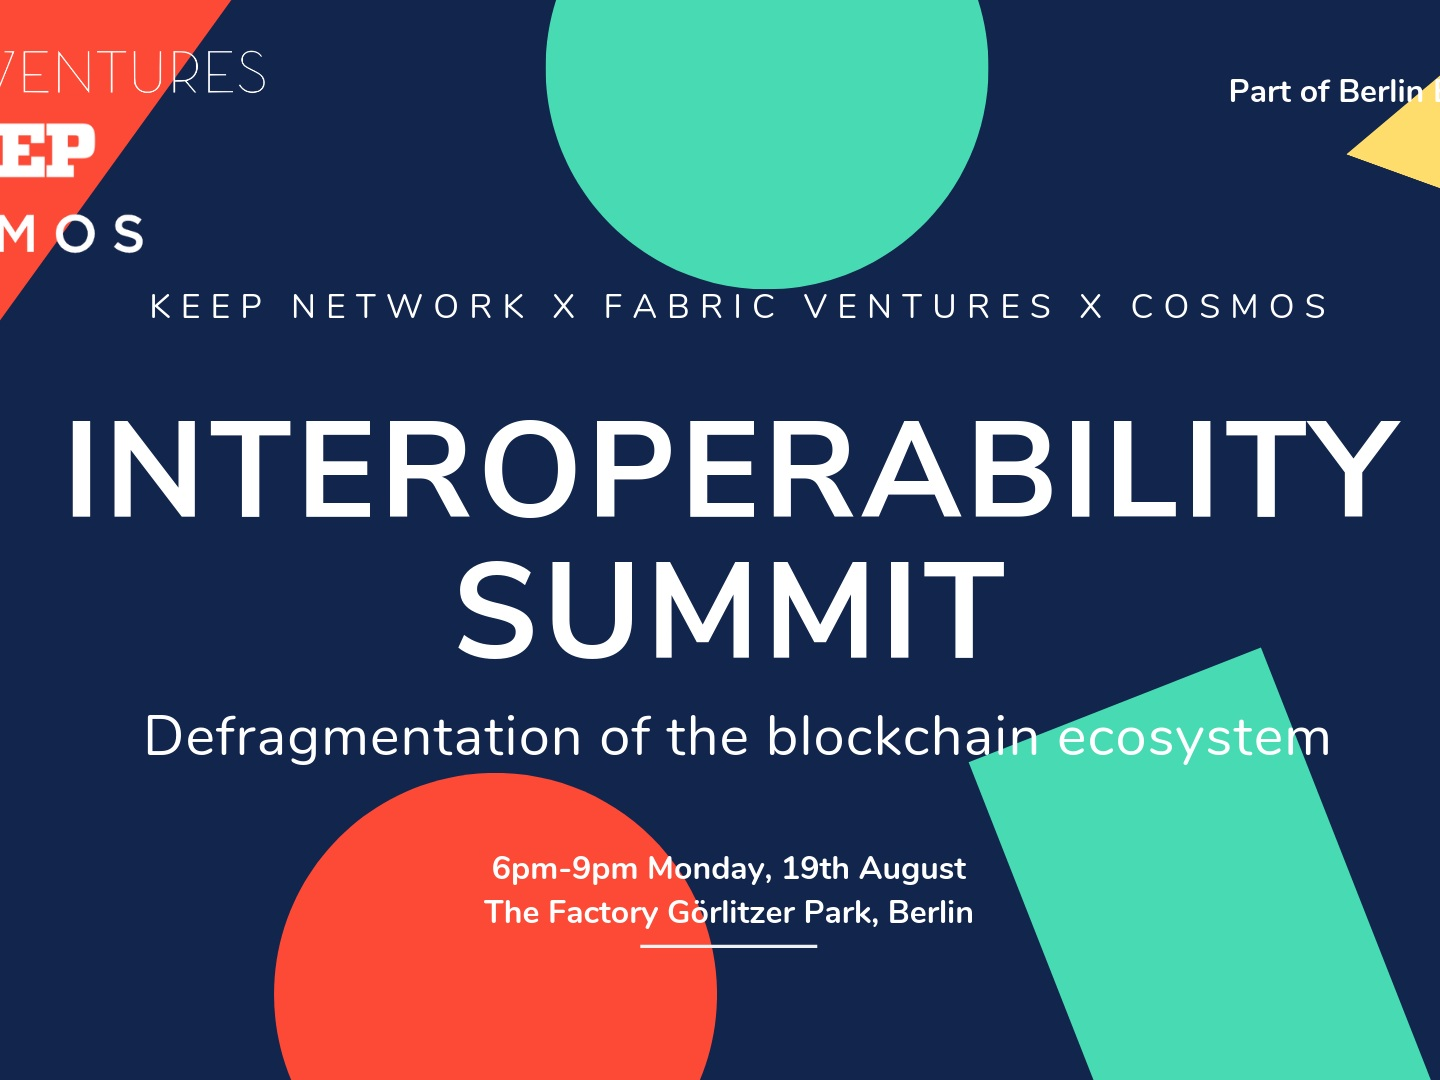 Interoperability Summit @ EthBerlin - - Berlin | 19th August -We are kicking off the Berlin Blockchain Week with a technical discussion on the defragmentation of blockchain ecosystem.